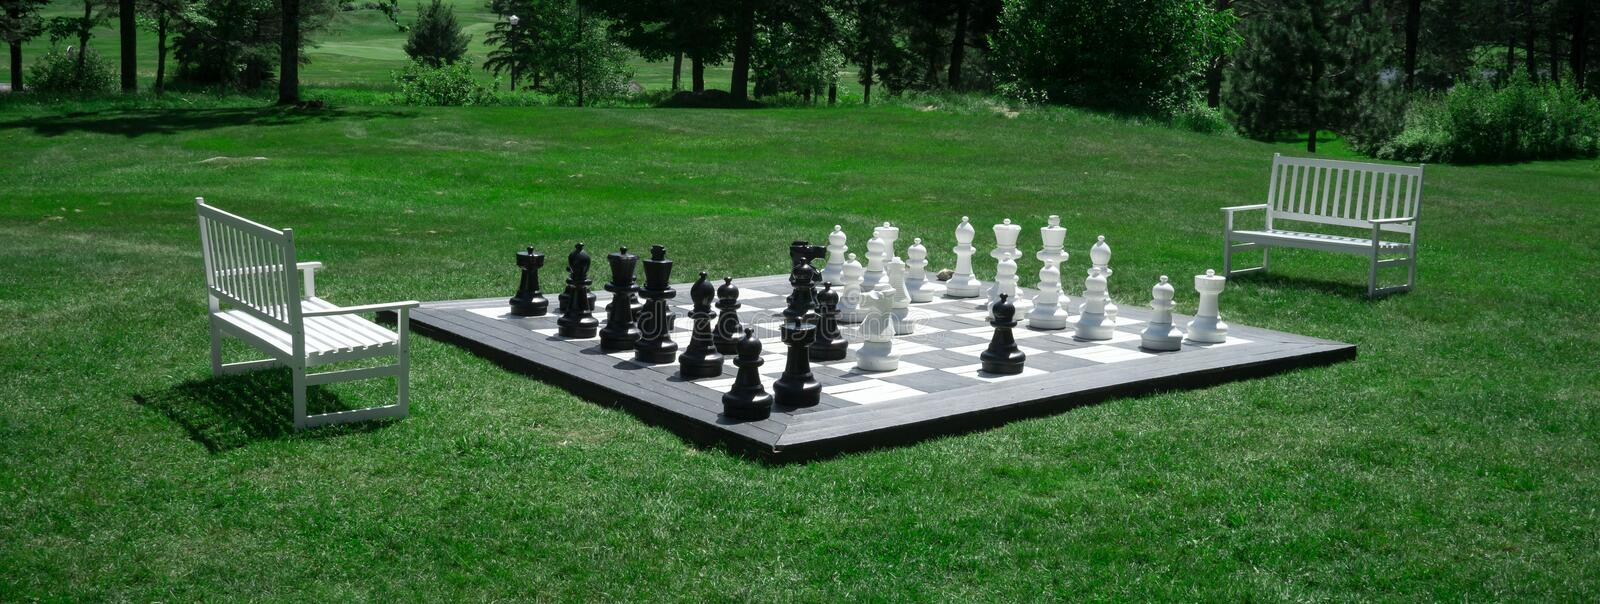 Outdoor Chess Match Stock Photography